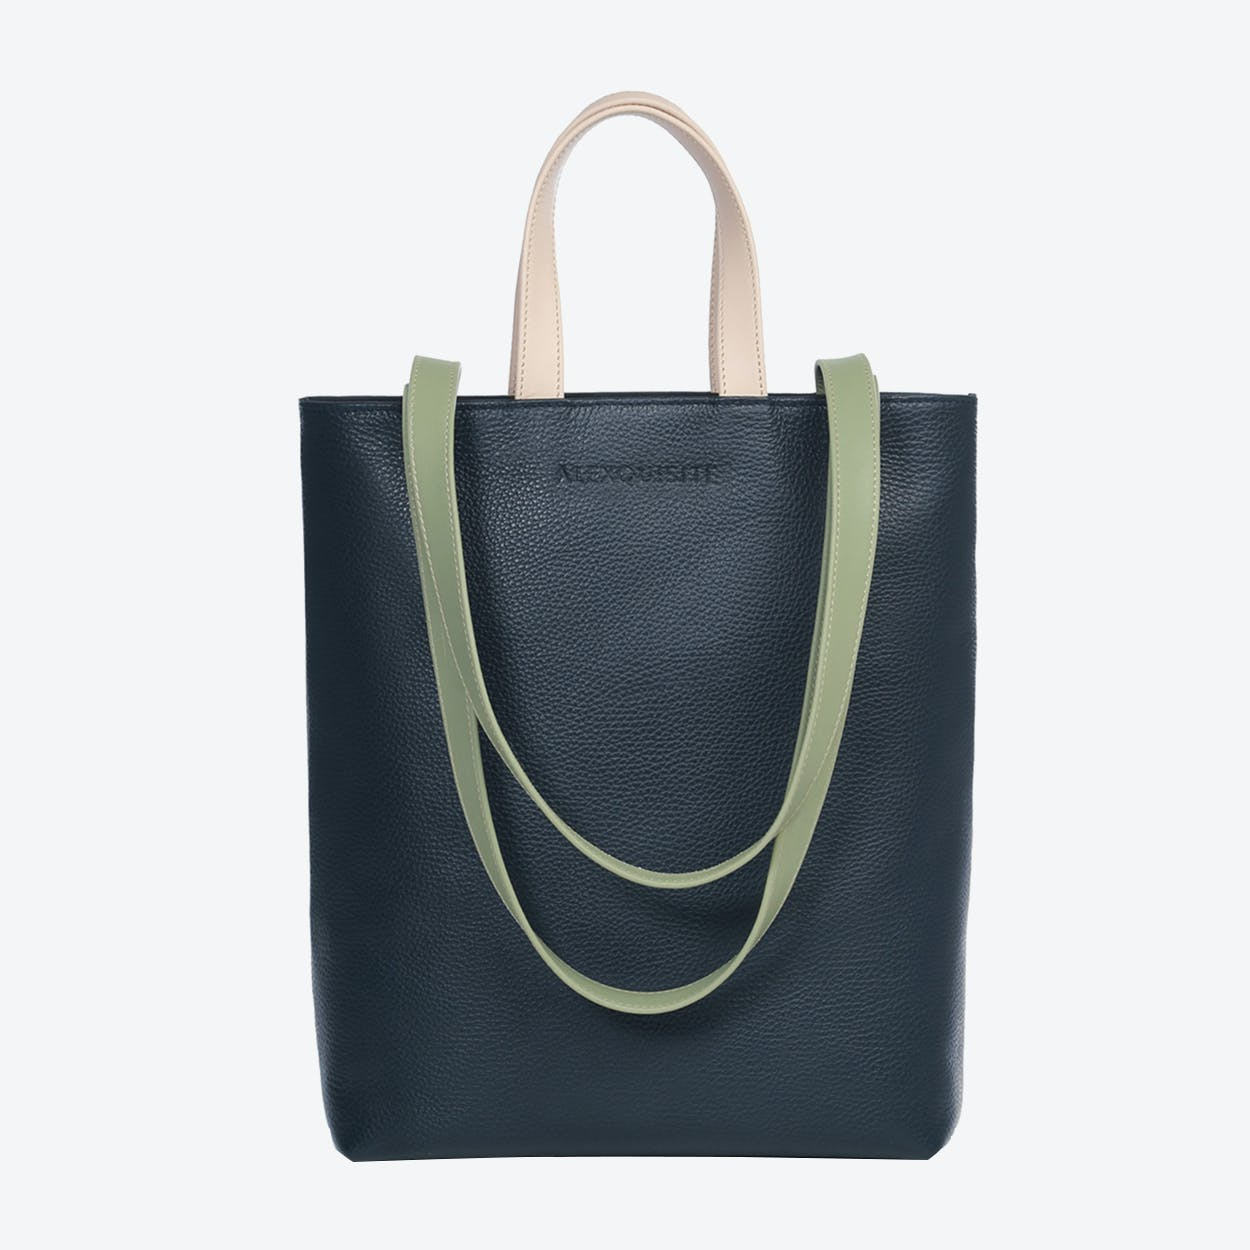 _ONE Tote Bag in Olive